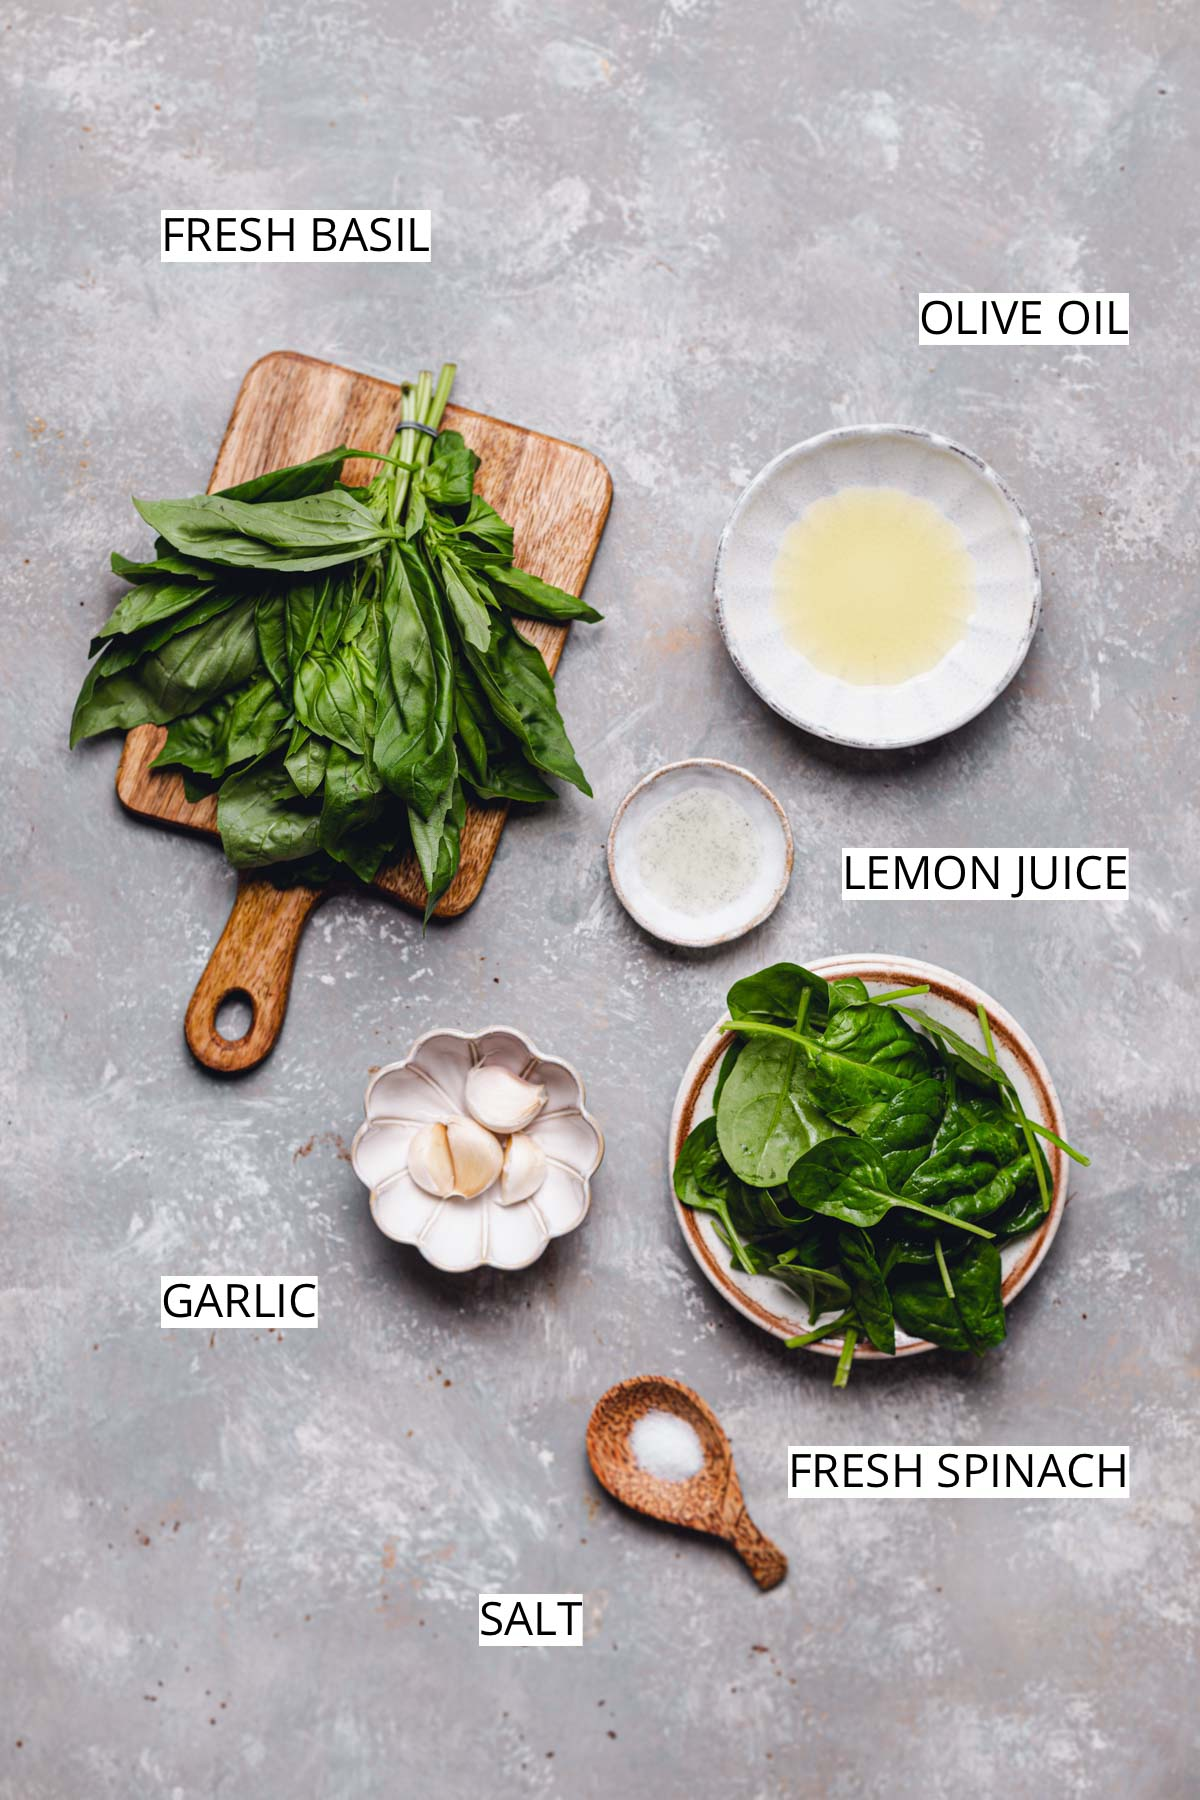 The 5 ingredients needed to make vegan pizza sauce laid out on a flat background.